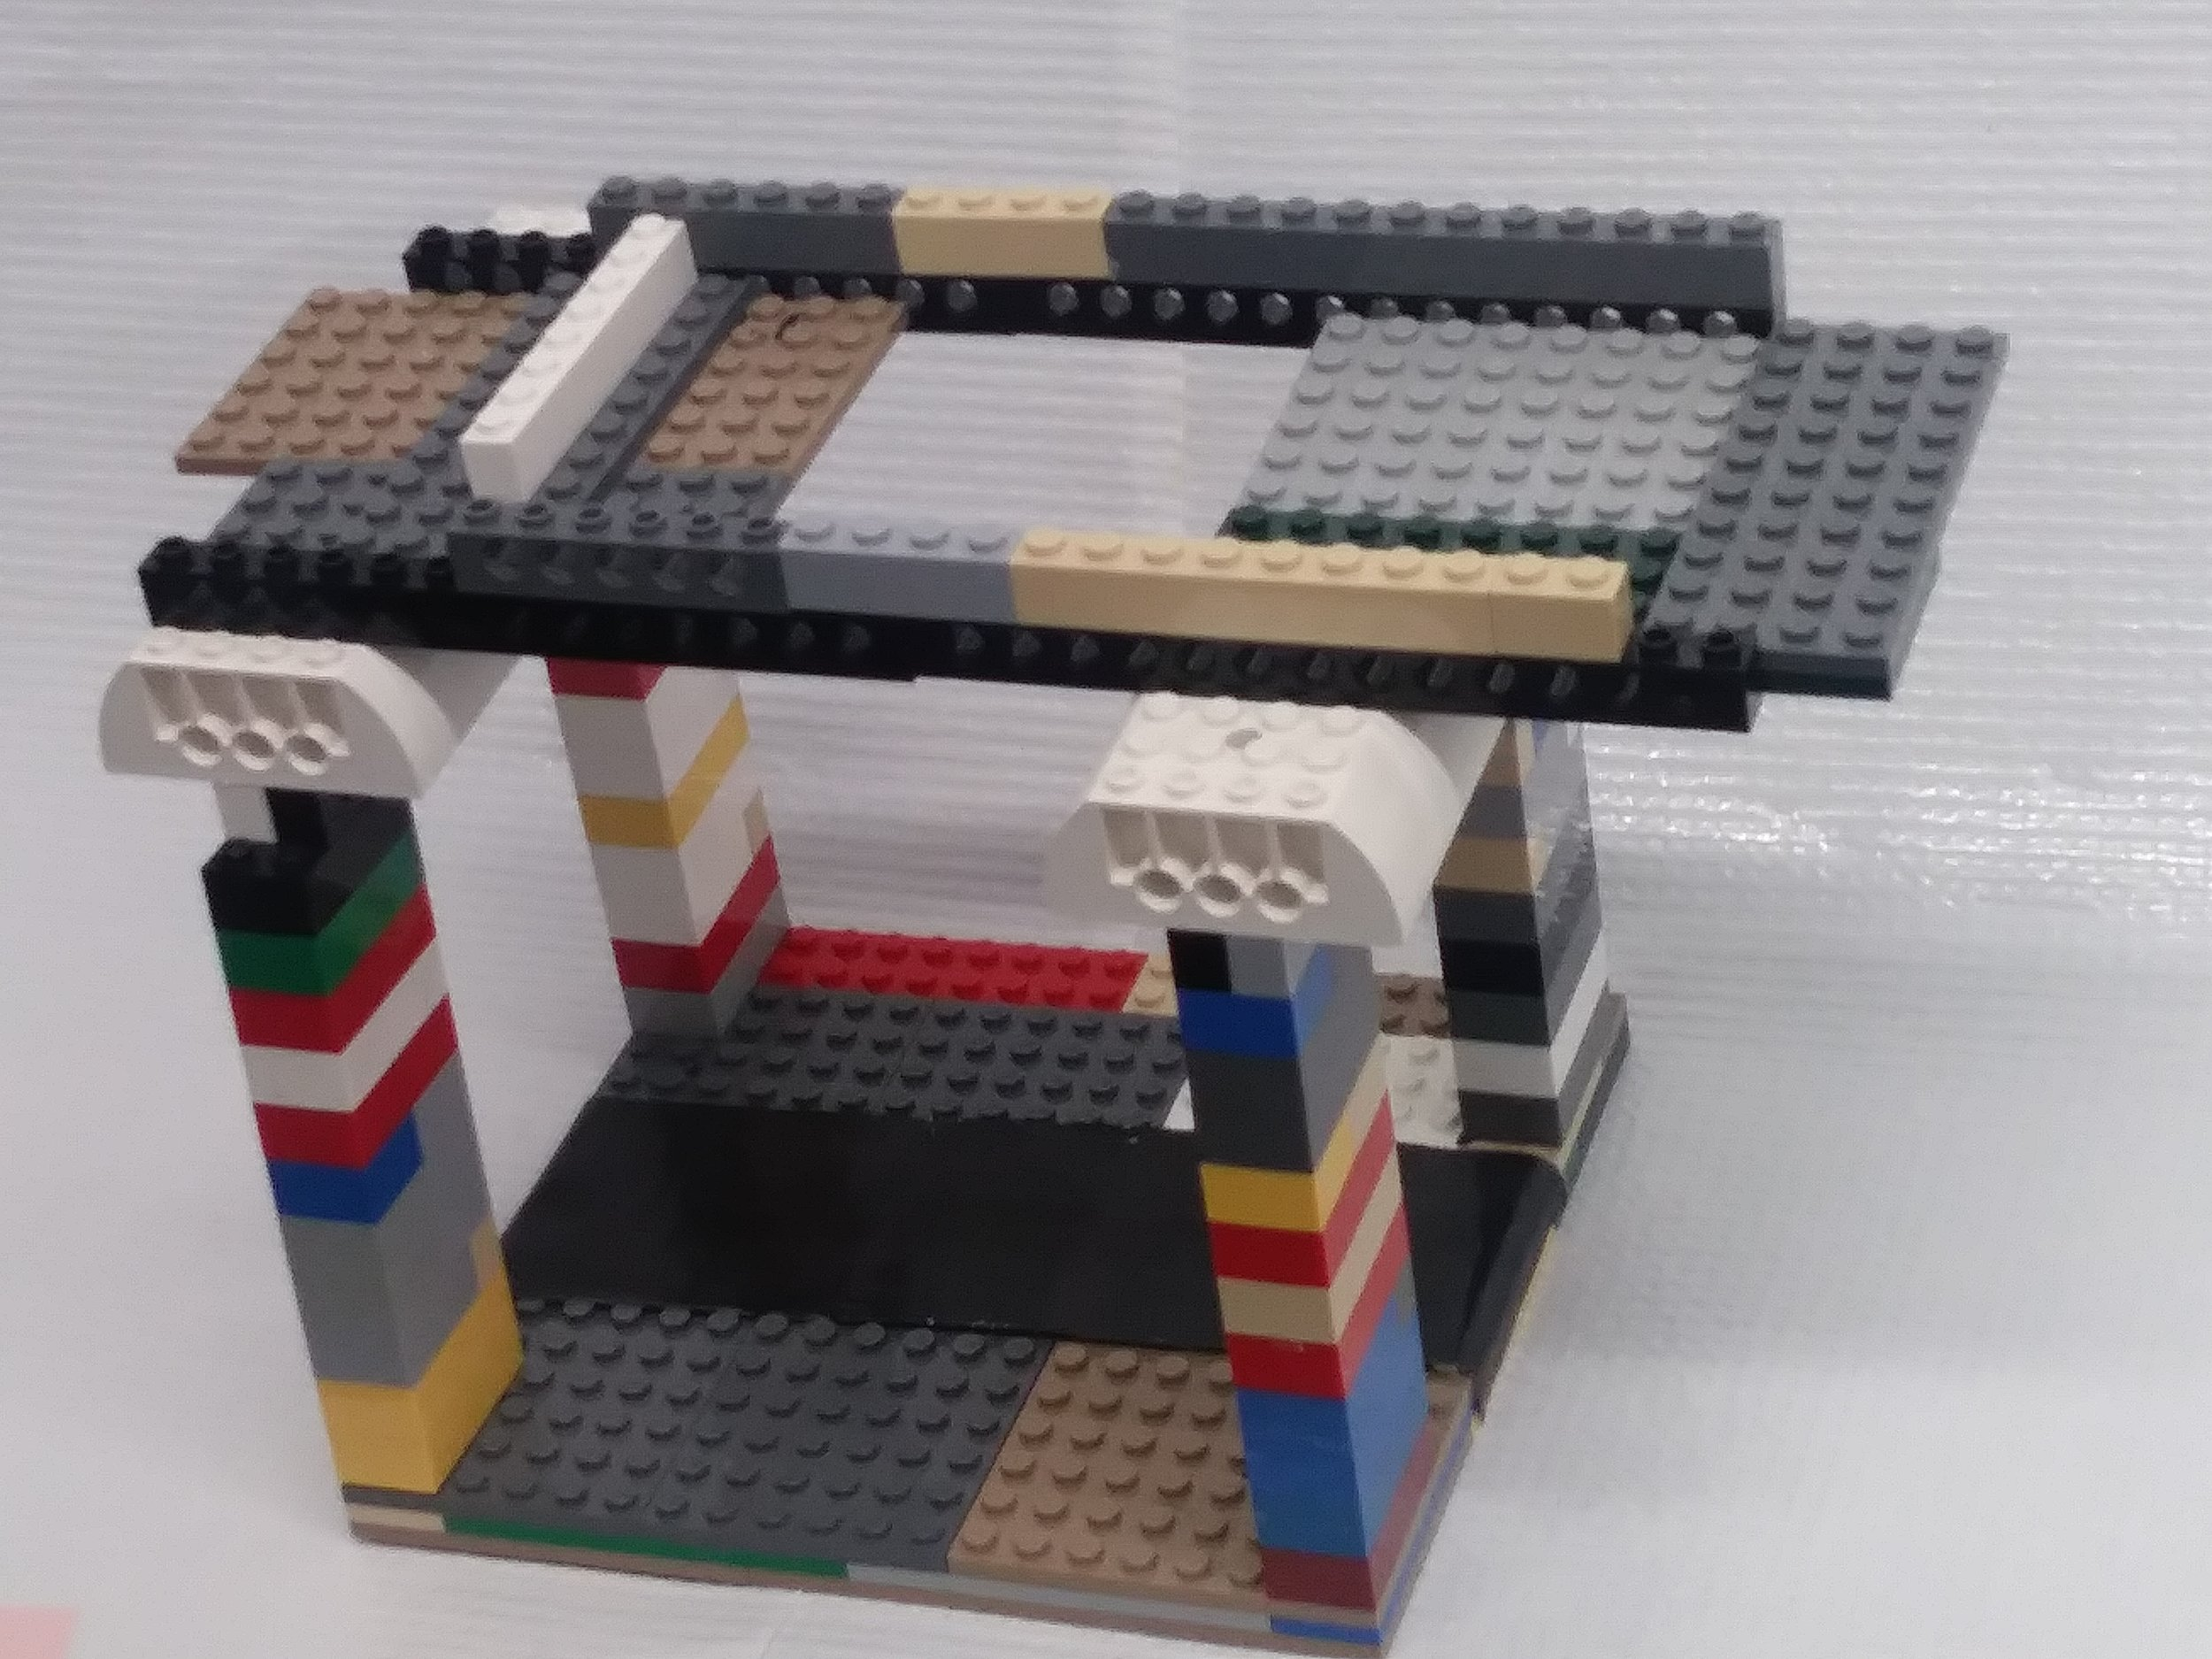 LEGO frame used to house a mobile phone for image capture.